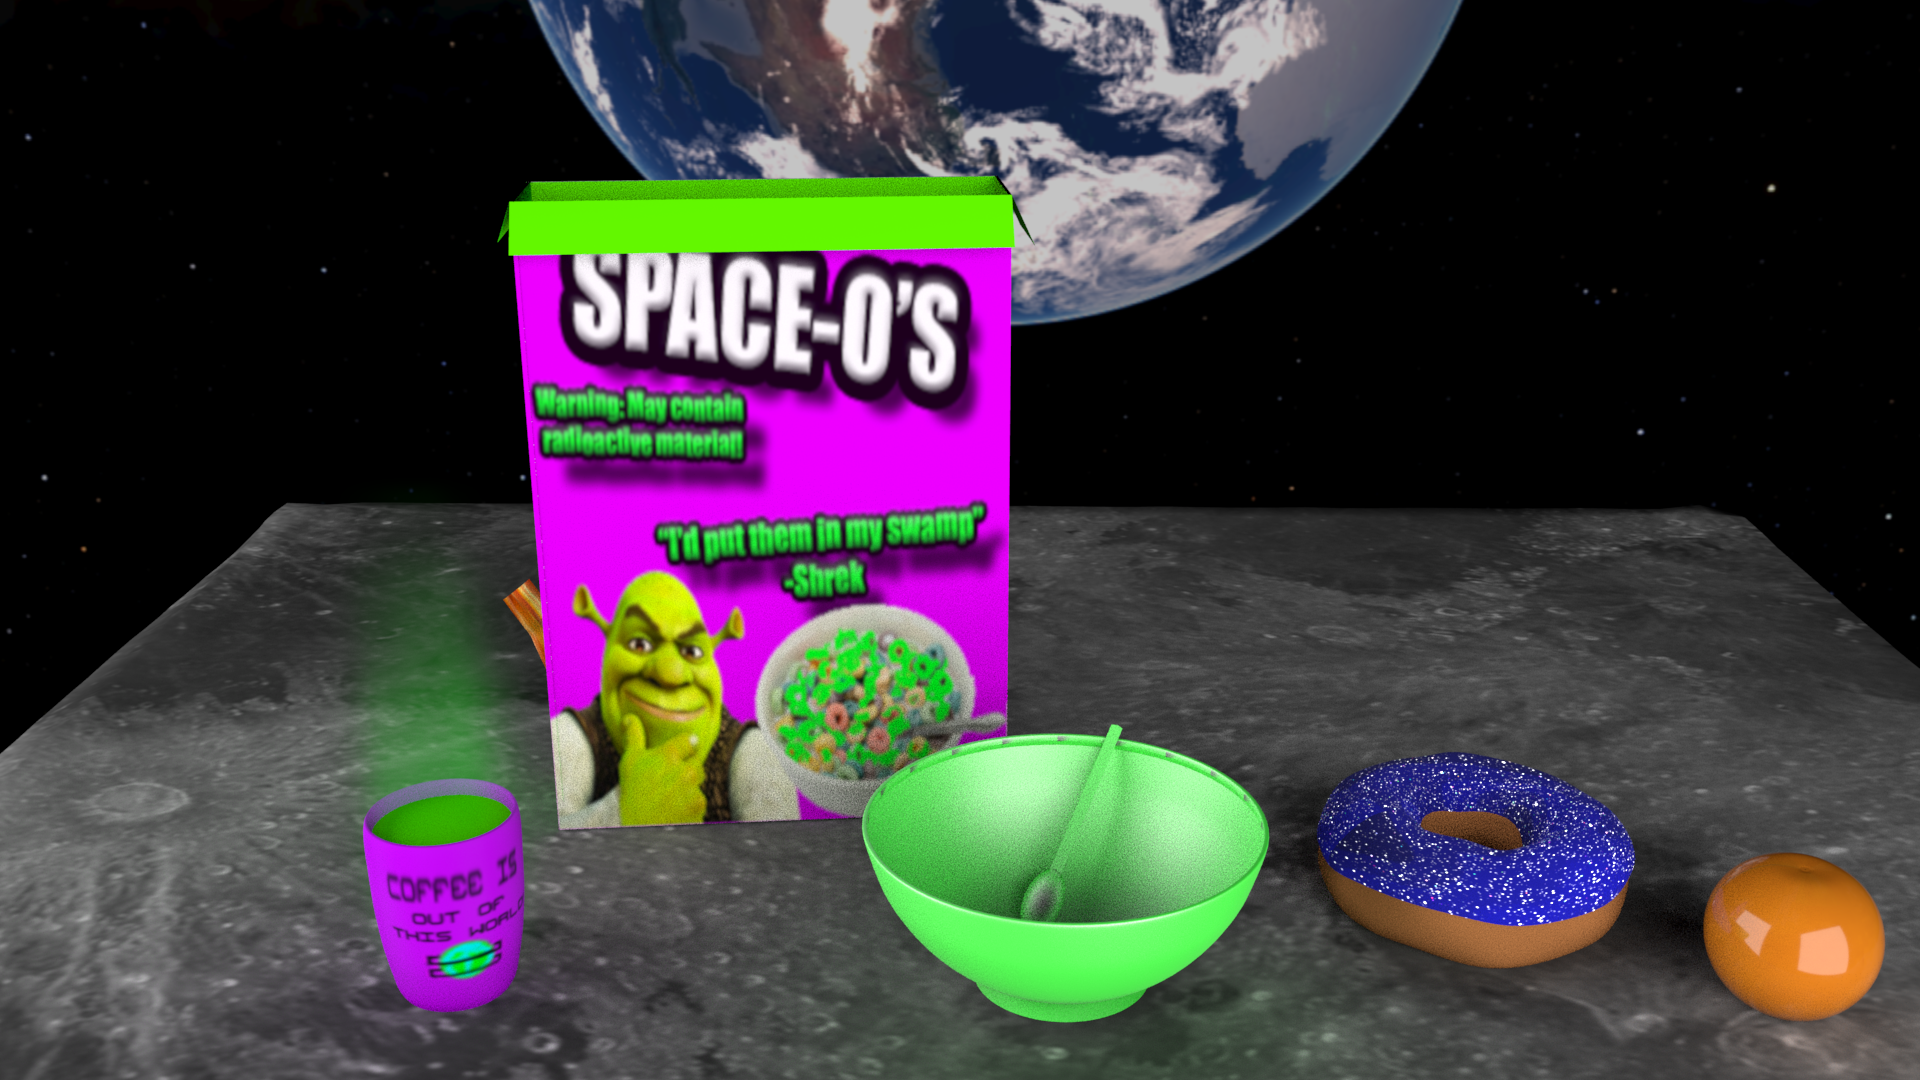 Funny Space-O's Mock Up